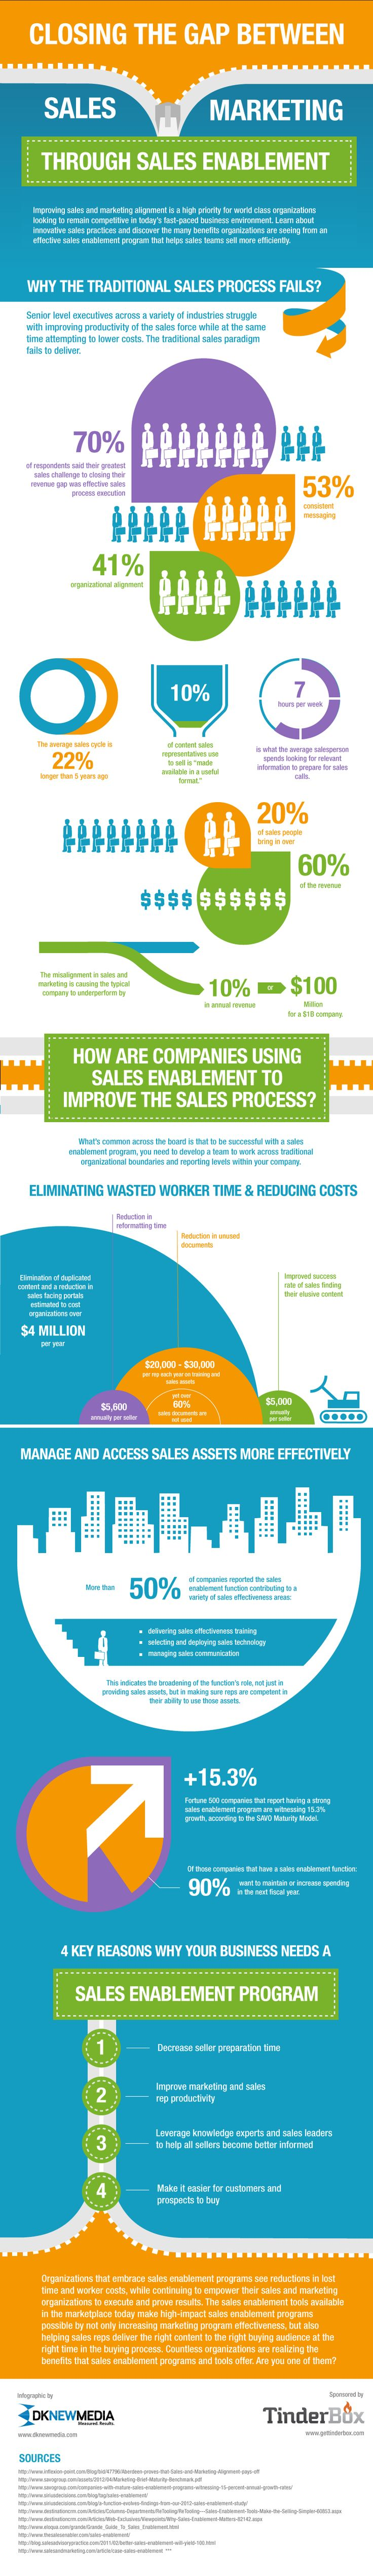 Closing the Gap between Sales and Marketing through Sales Enablement